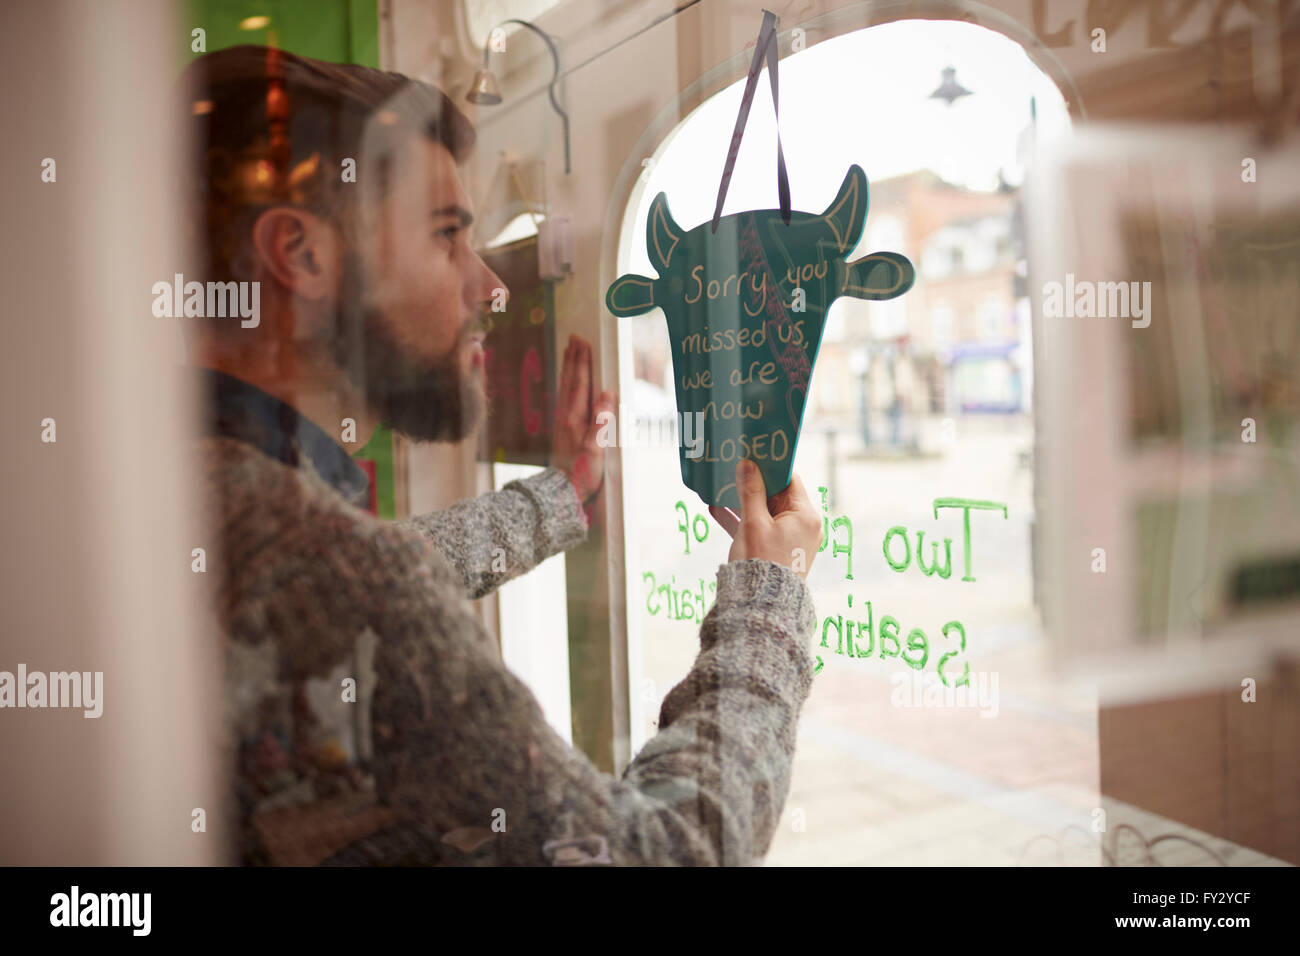 Male Owner Of Coffee Shop Turning Open Sign - Stock Image